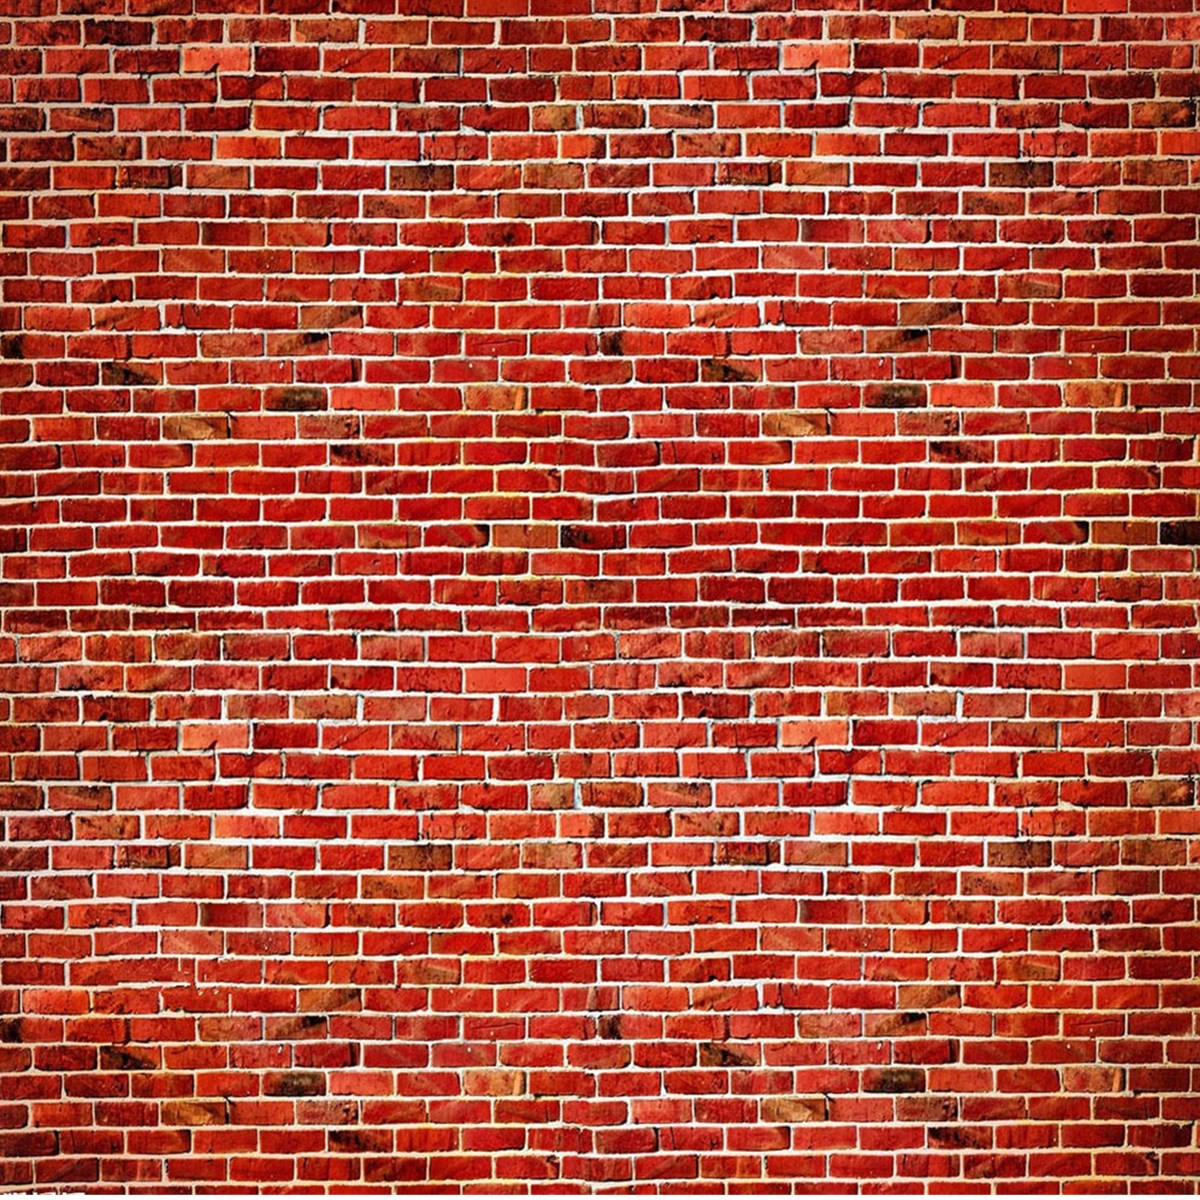 10X10FT Vinyl Red Brick Wall Photography Background Backdrop Studio Photo Prop